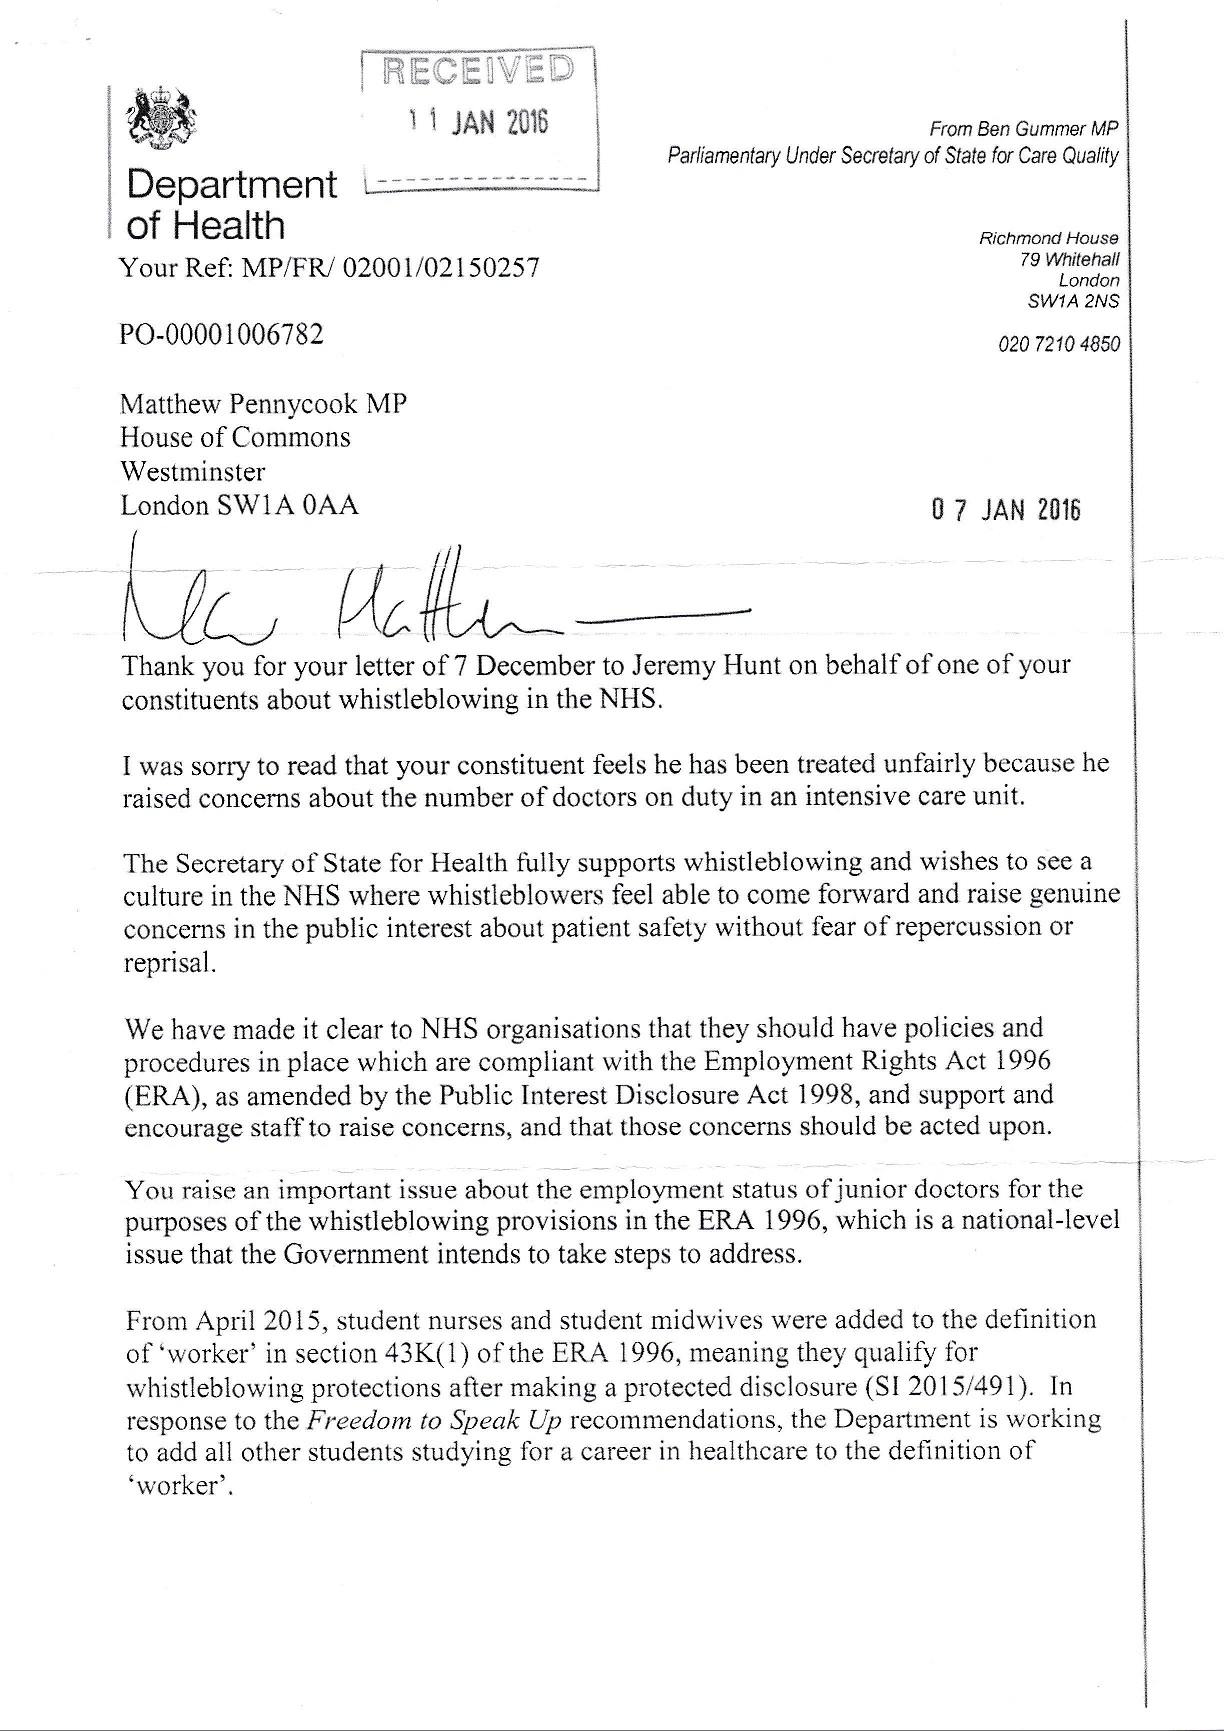 letter to bma jdc chair in response to contract agreement